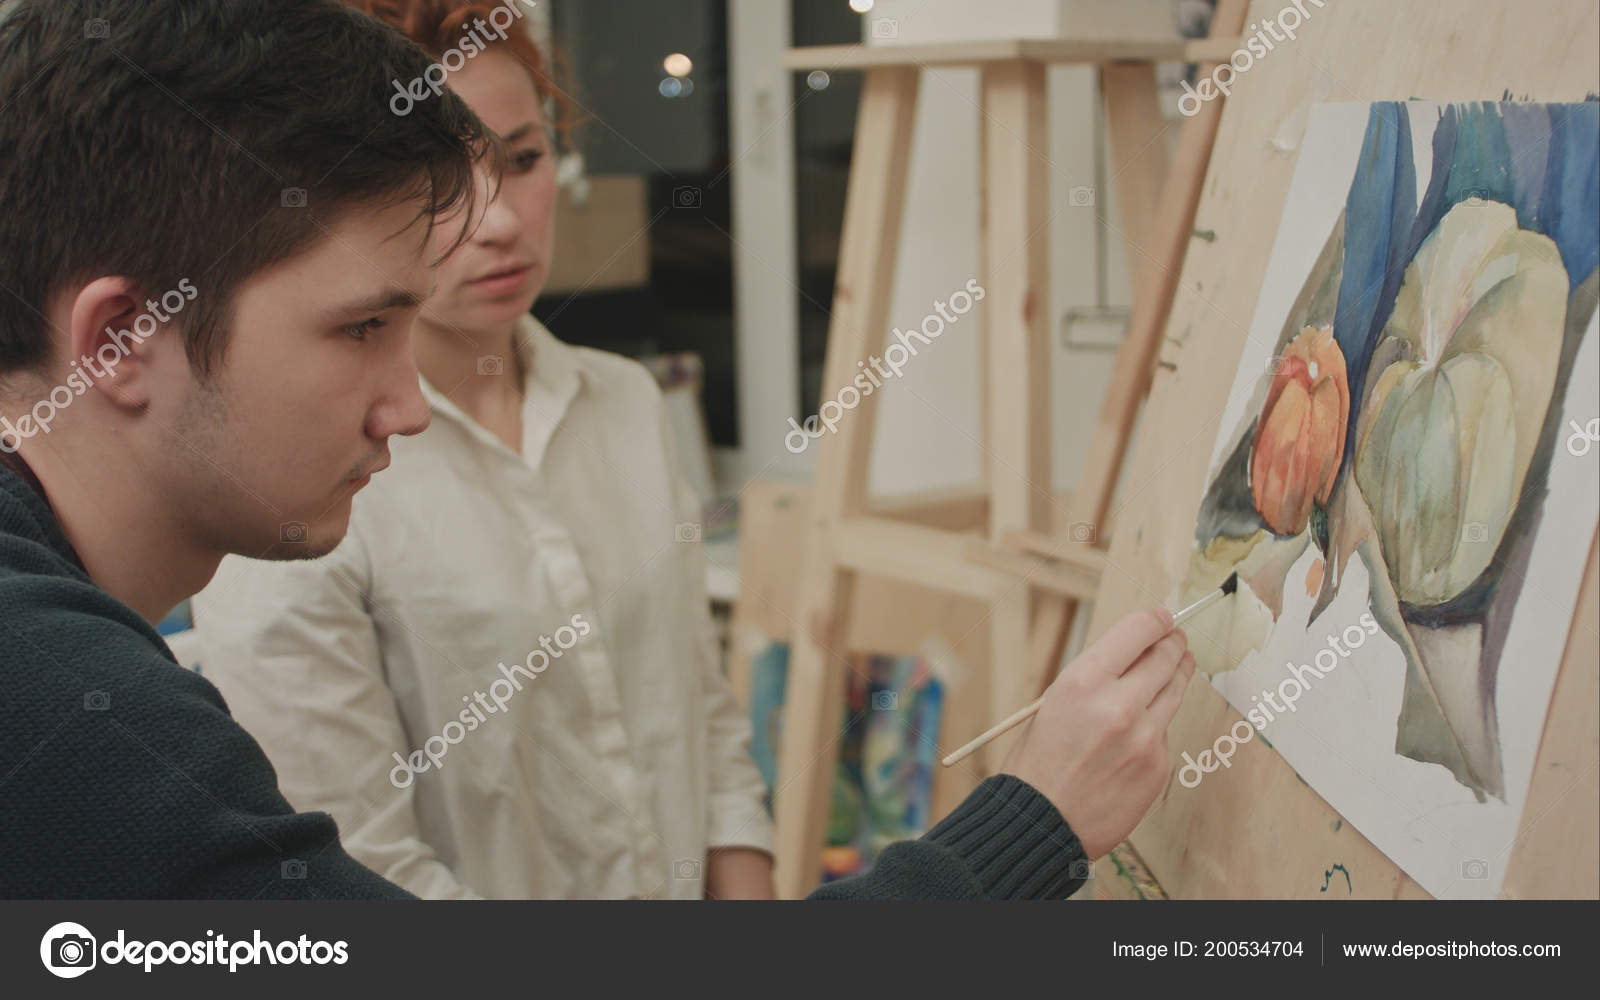 Female artist teaching young male student to paint with